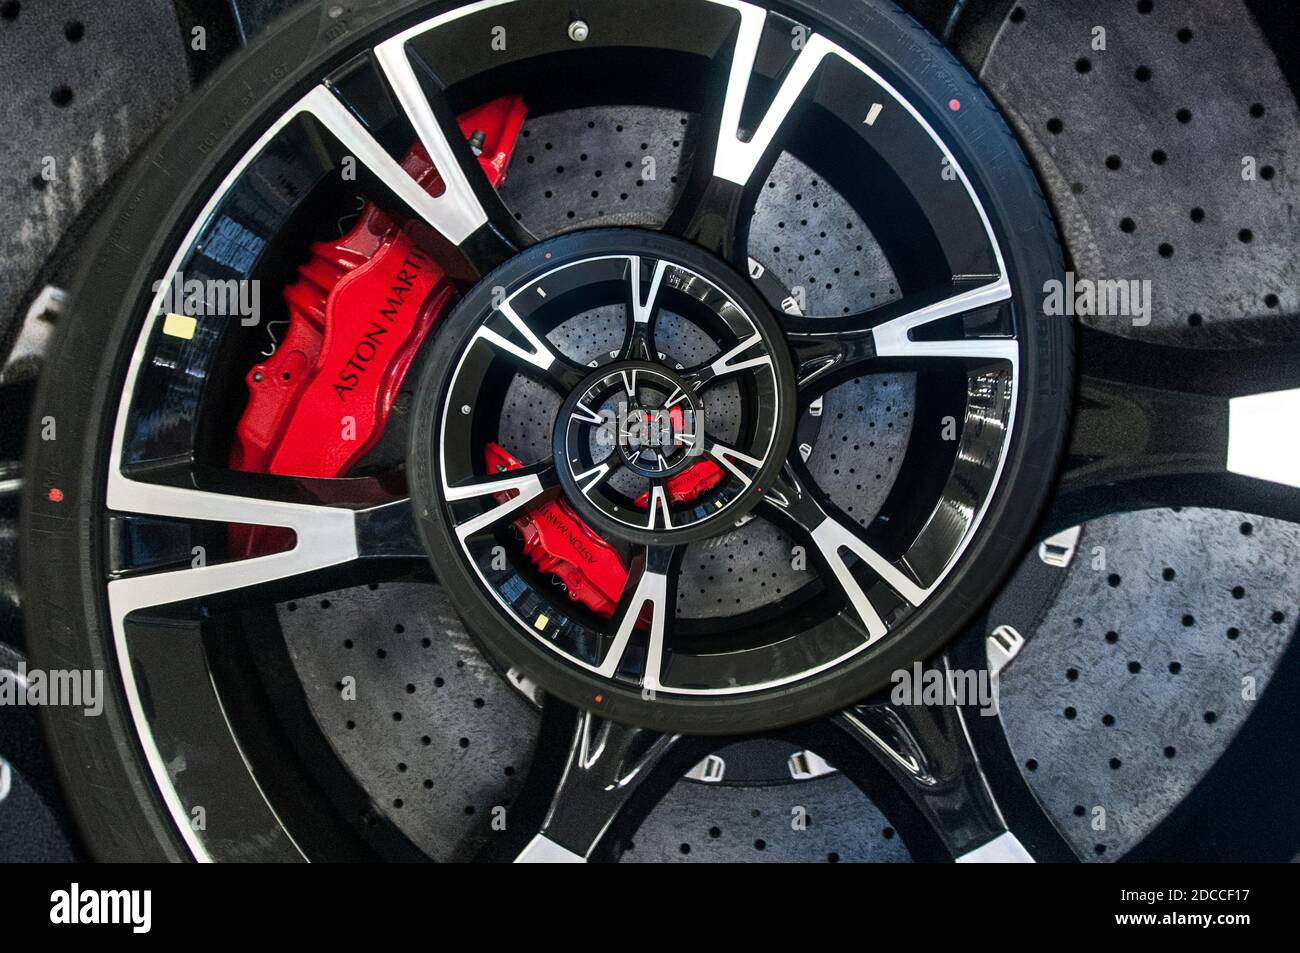 Around the UK - images with a twist. Abstract spherical distorted images. An Aston Martin car wheel showing the Aston red brake calliper & brake disc. Stock Photo